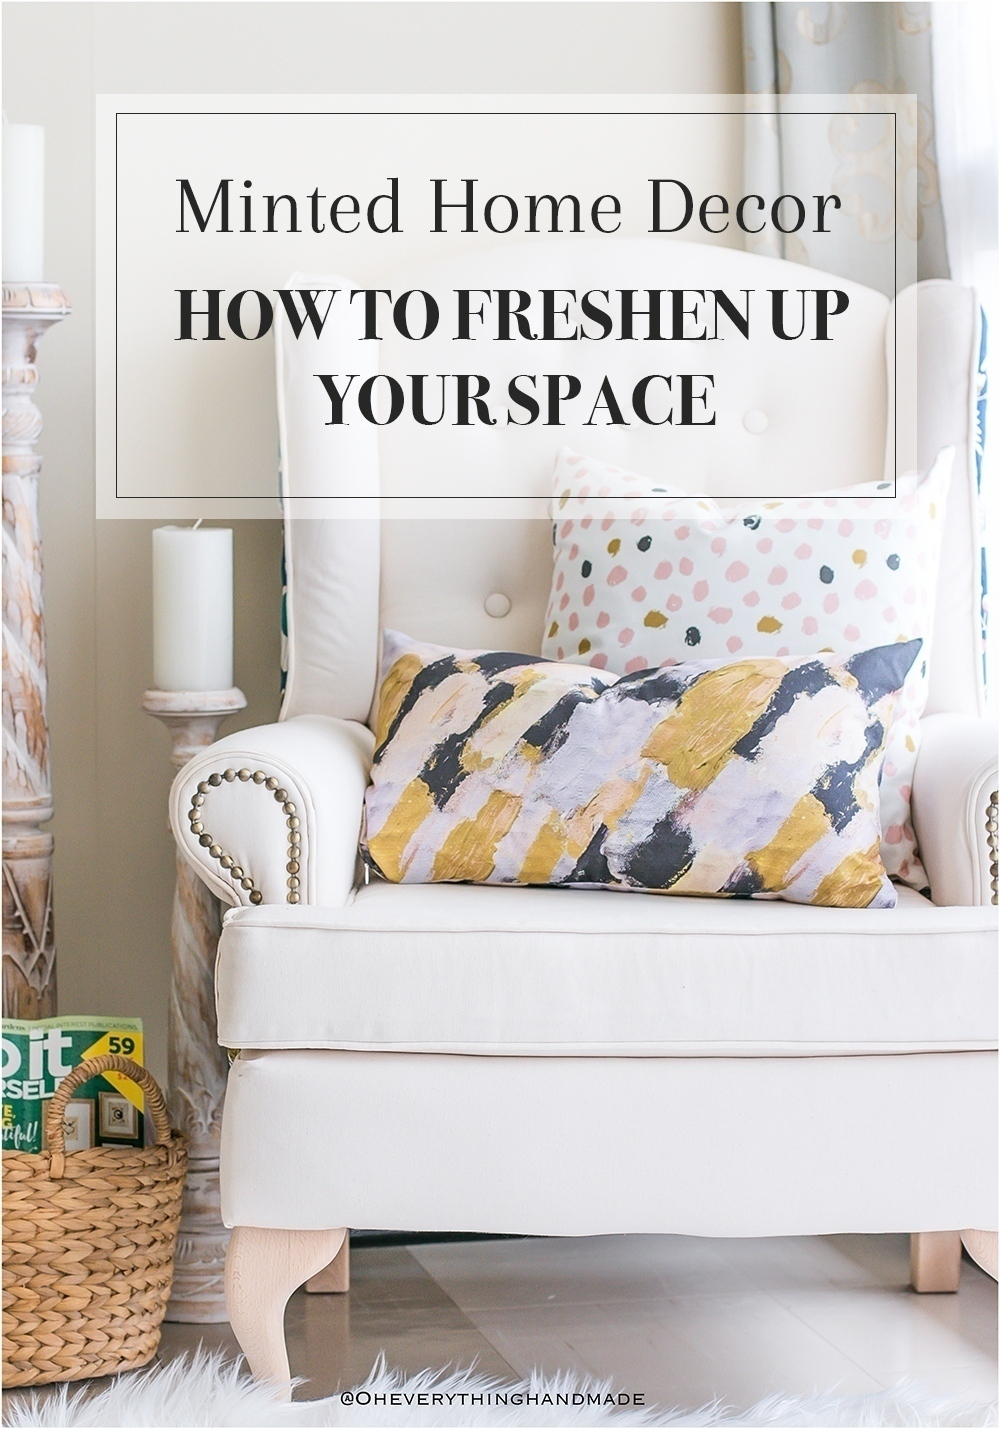 minted home decor how to freshen up your space oh everything handmade. Black Bedroom Furniture Sets. Home Design Ideas